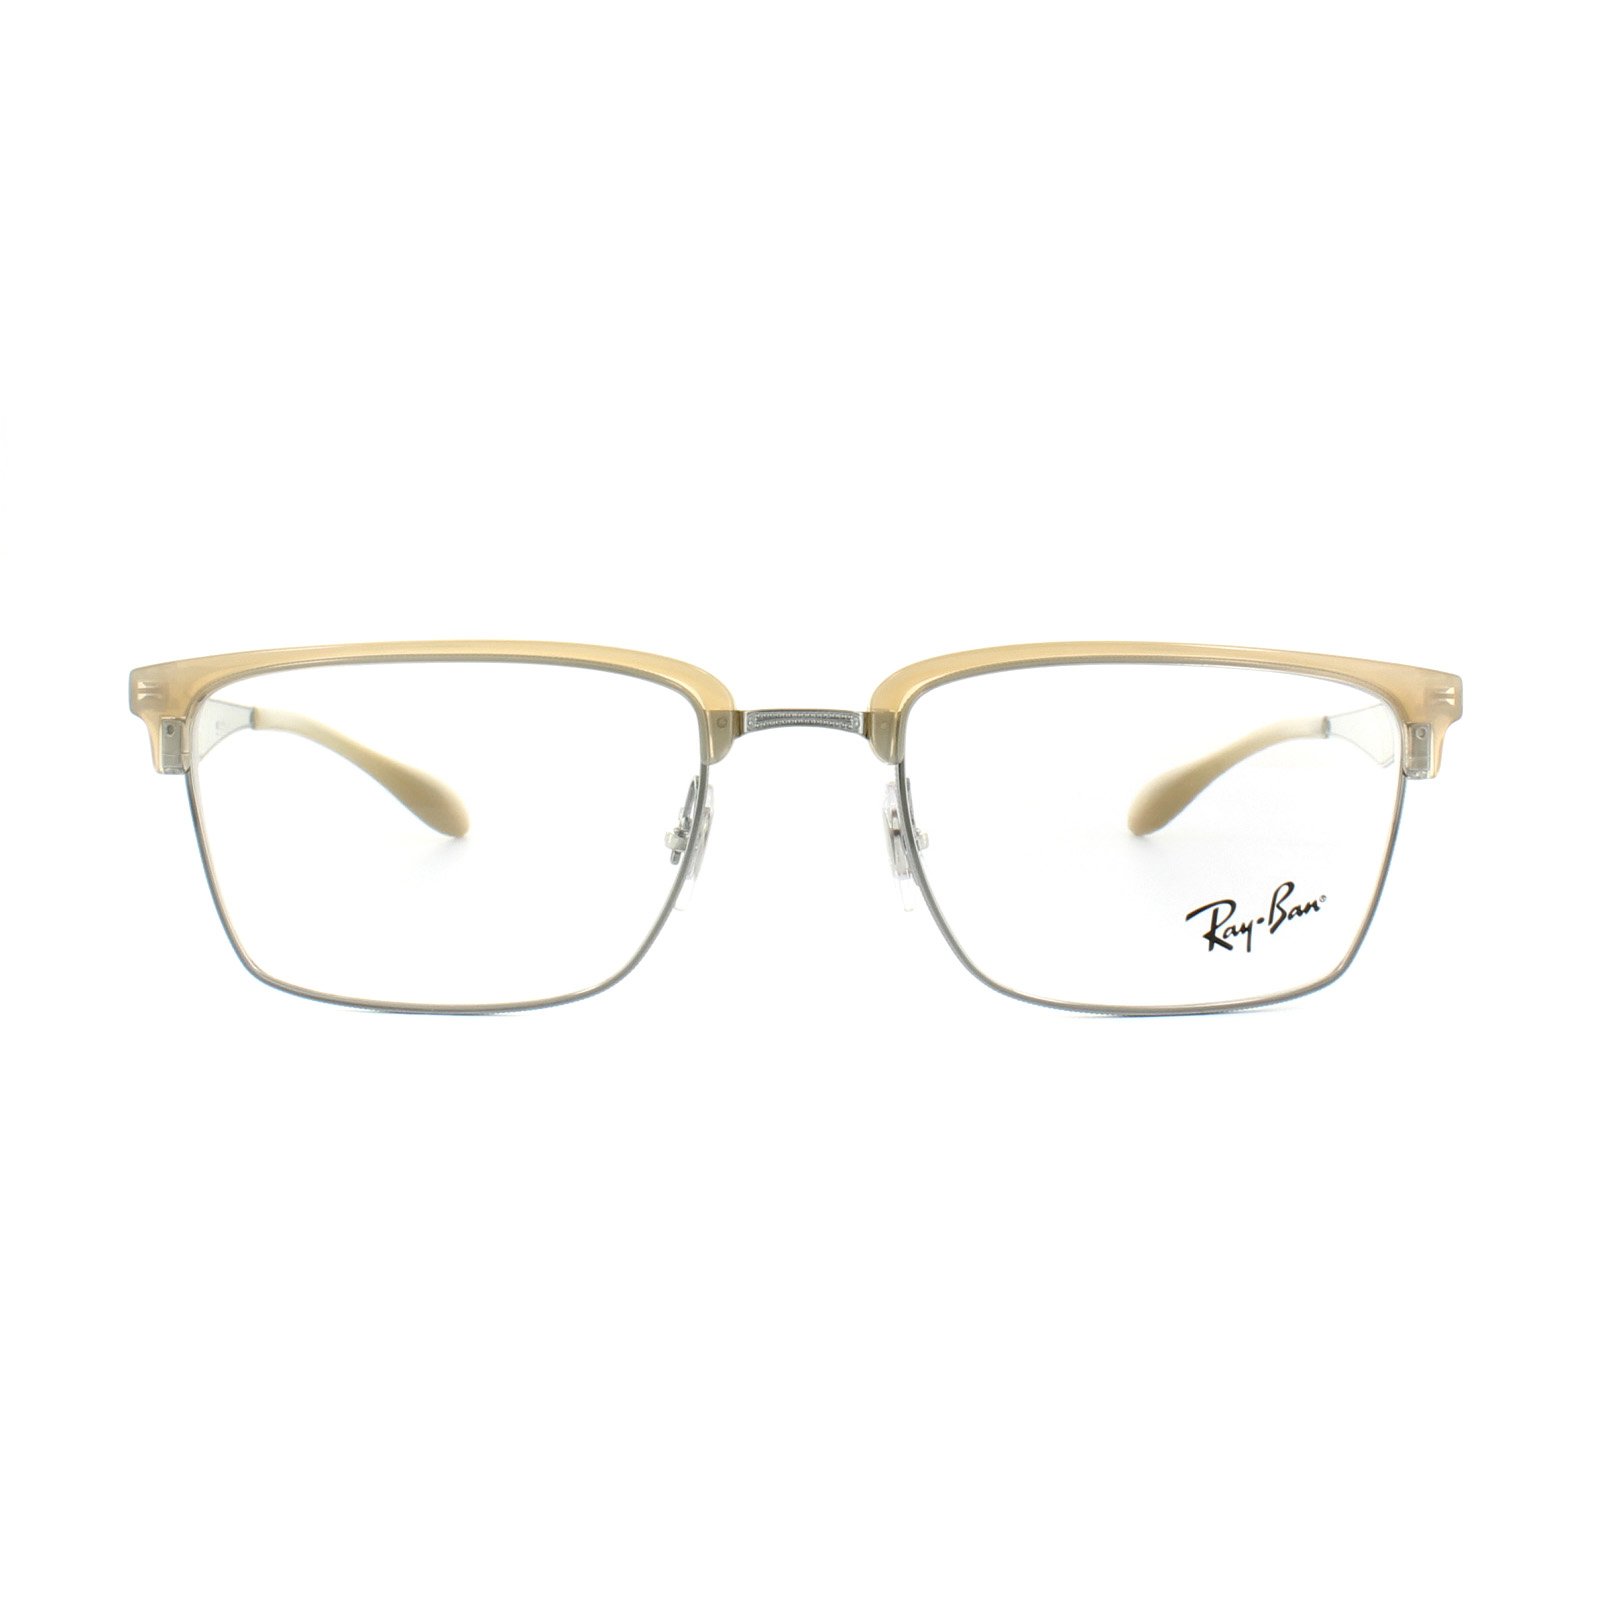 7717ddd3d7c Cheap Ray-Ban RX 6397 Glasses Frames - Discounted Sunglasses